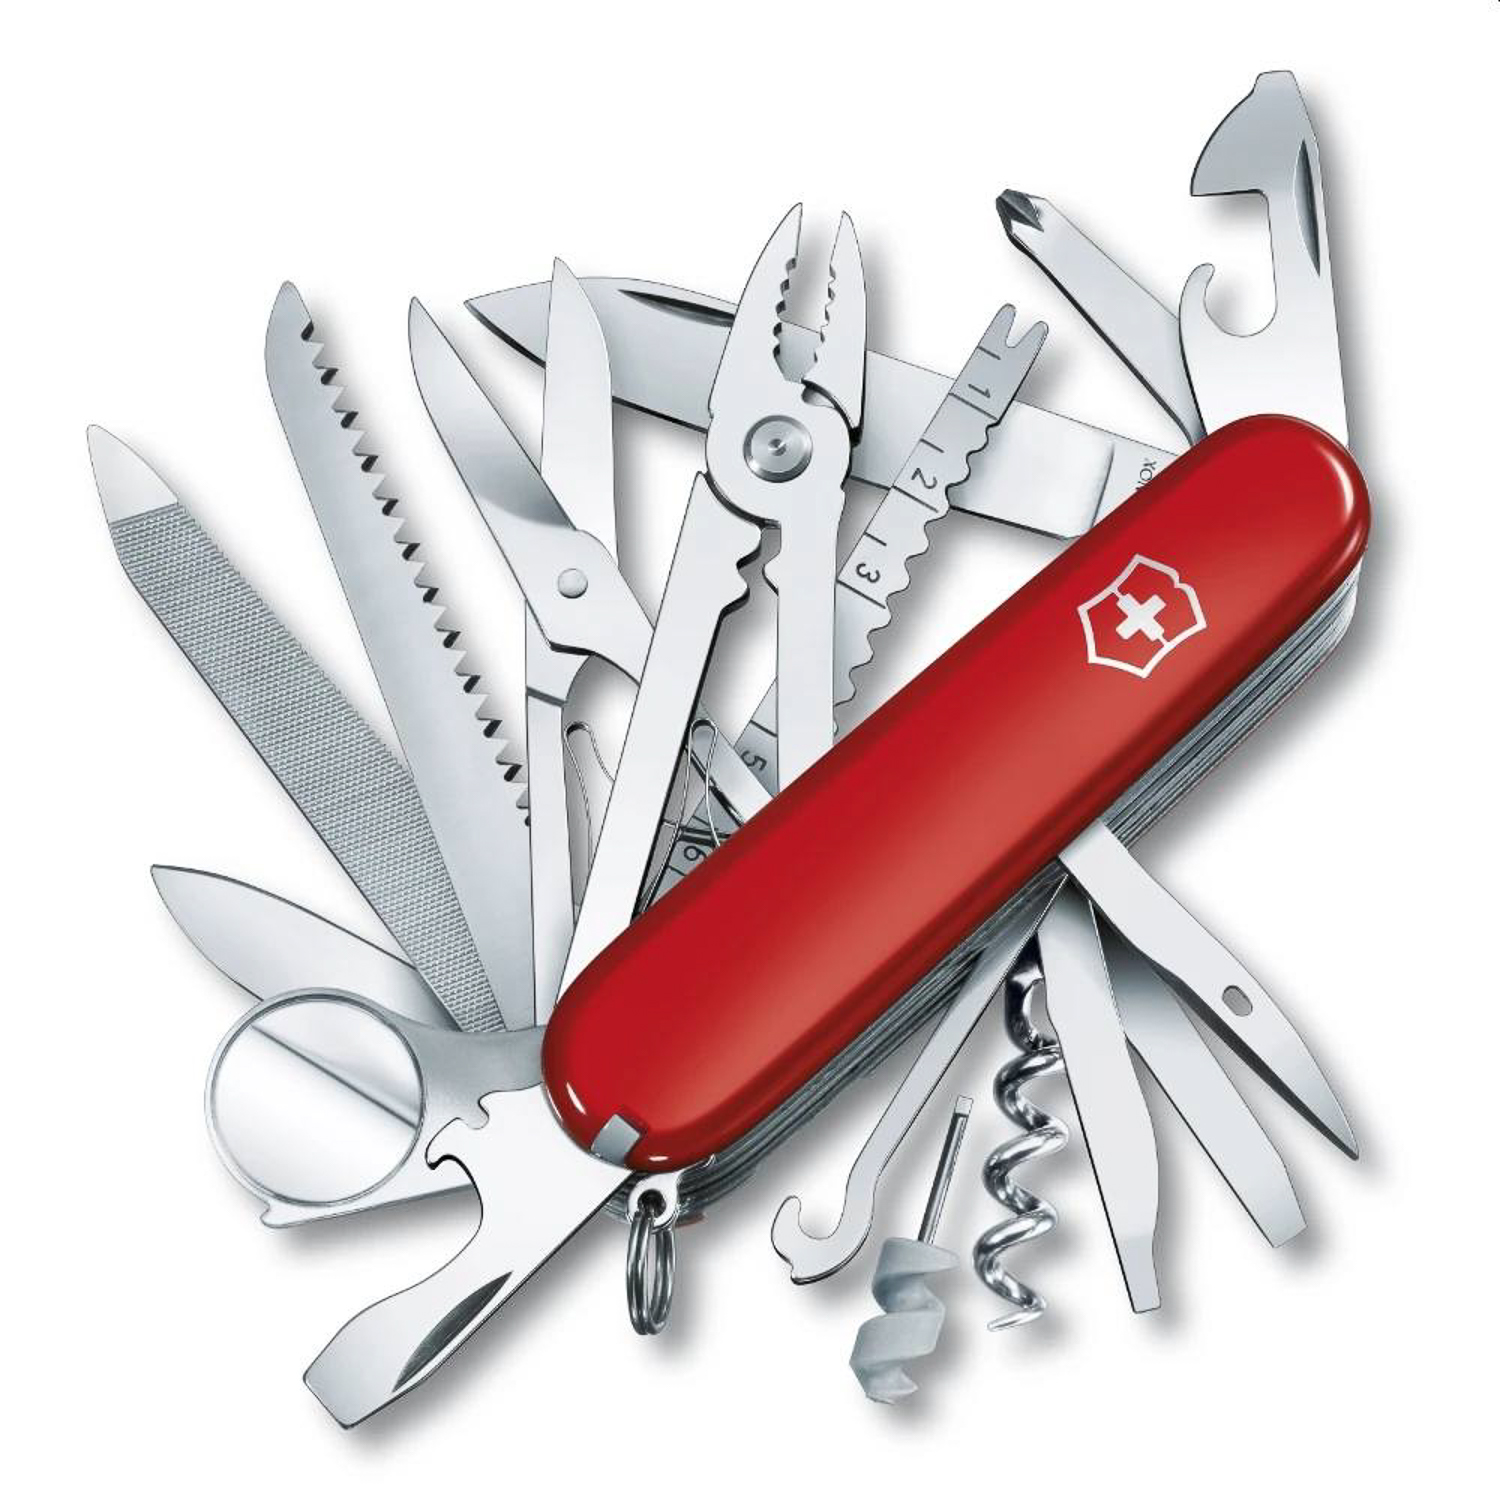 The Victorinox SwissChamp knife